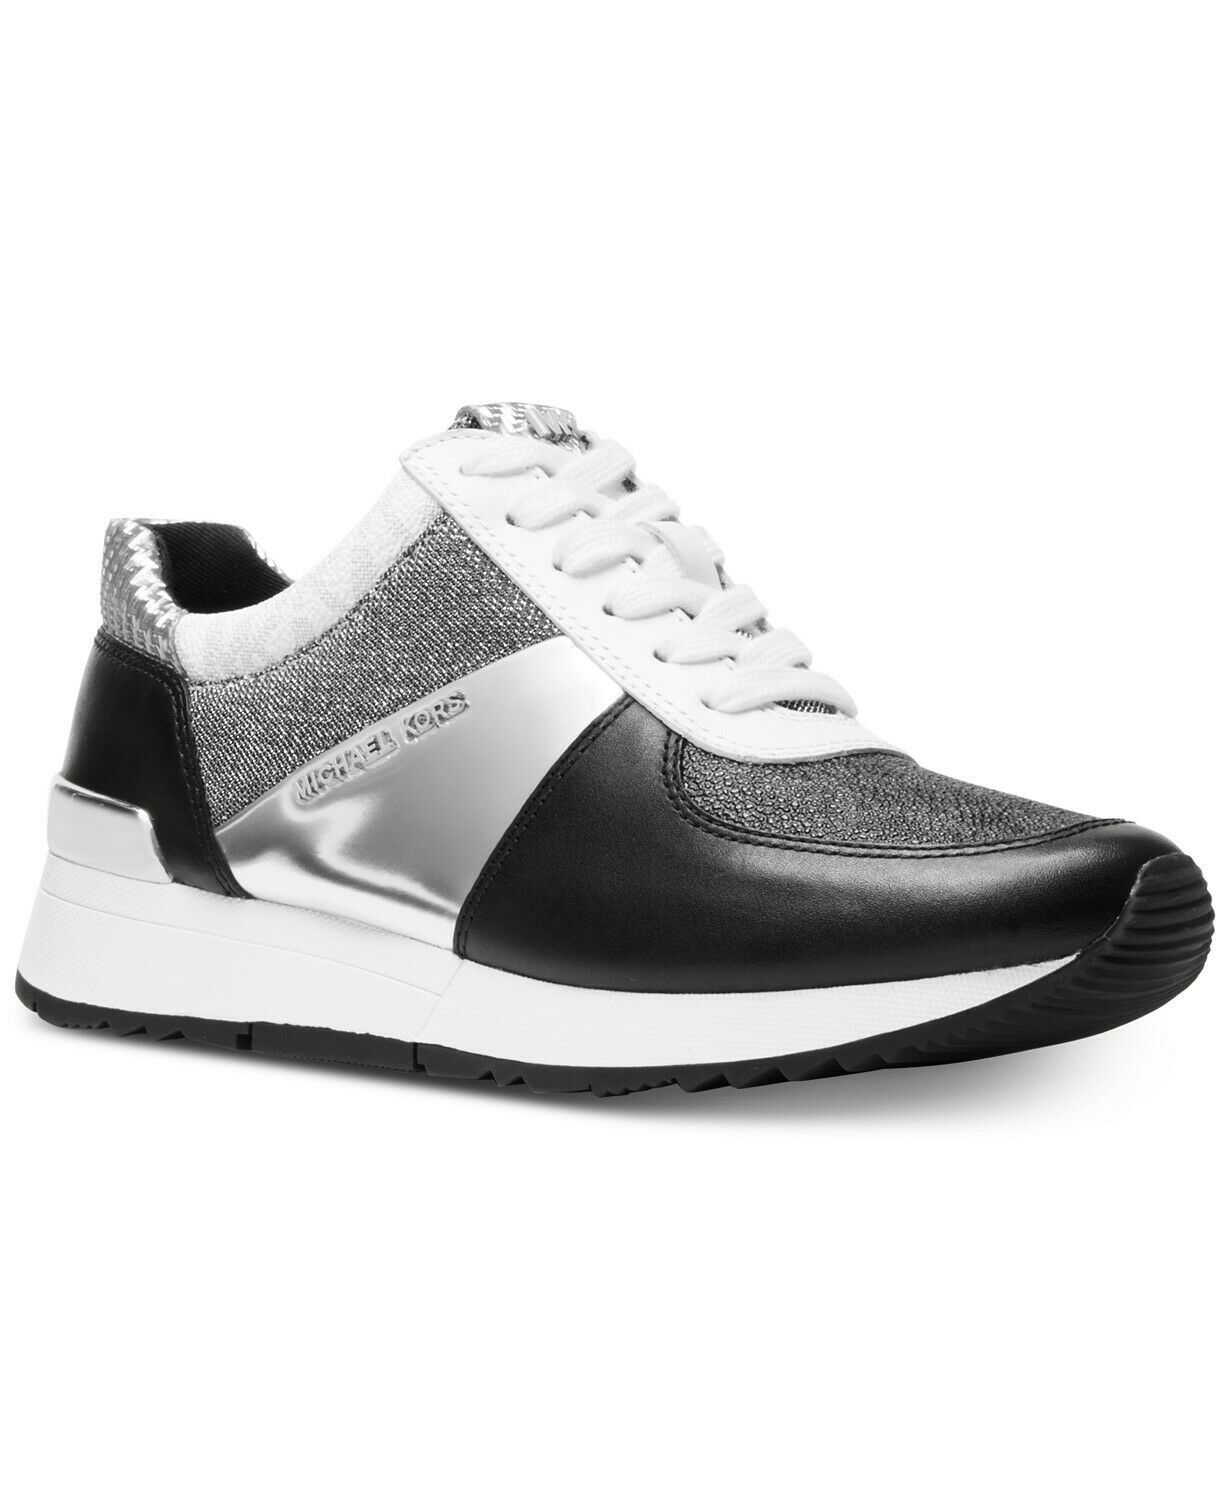 Michael Kors Women's Allie Trainer Leather Metallic Sneakers Shoes Black Silver